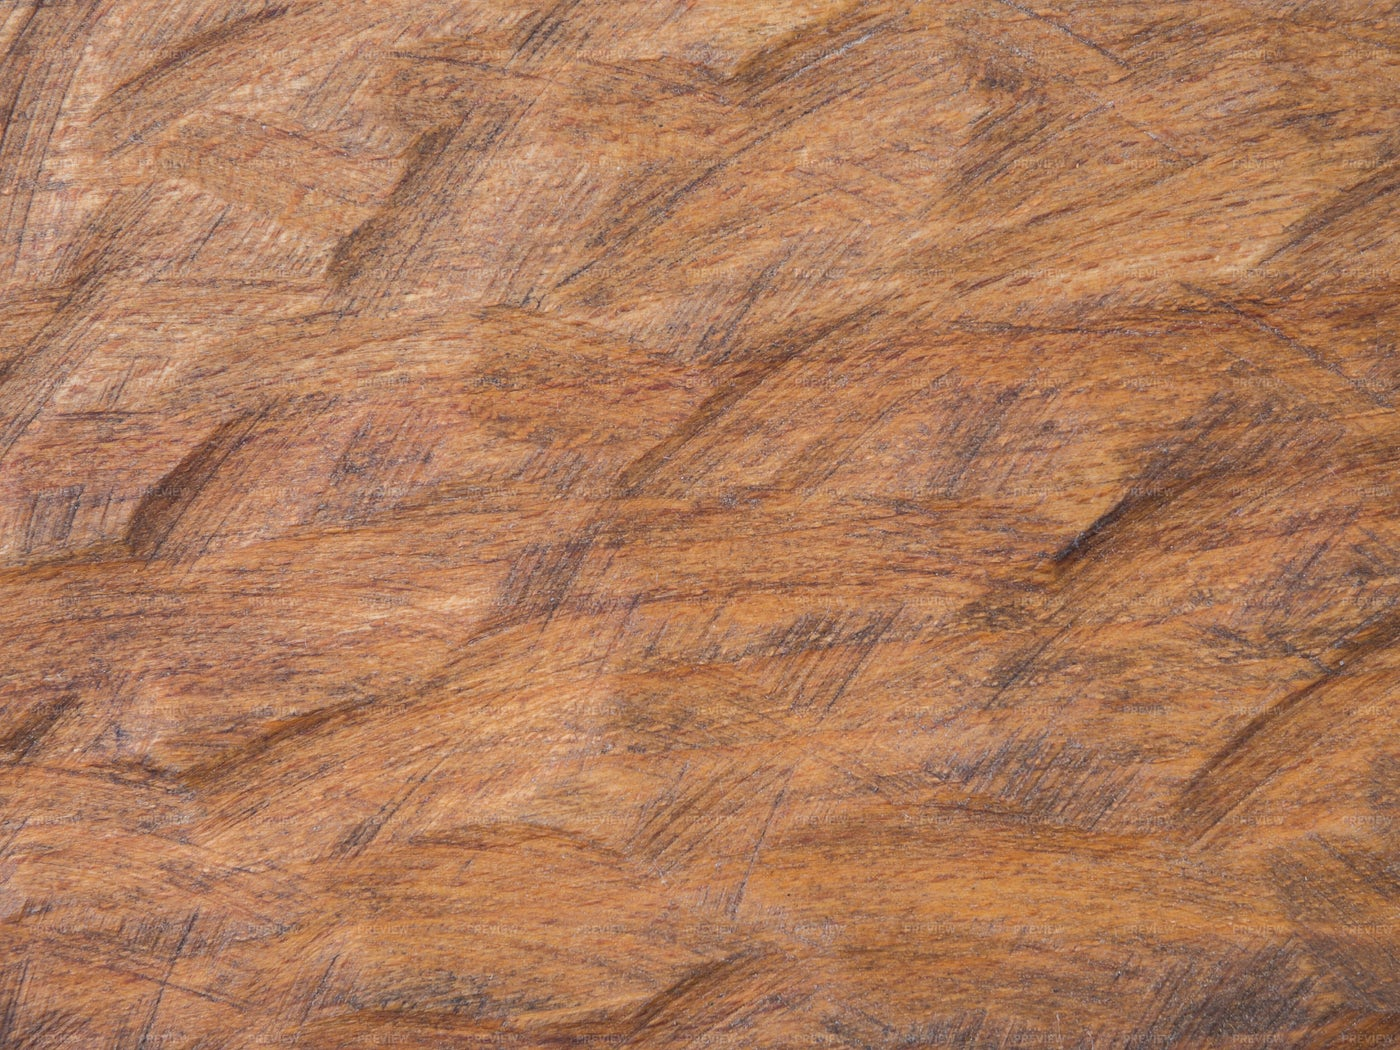 Brown Wooden Board Background: Stock Photos